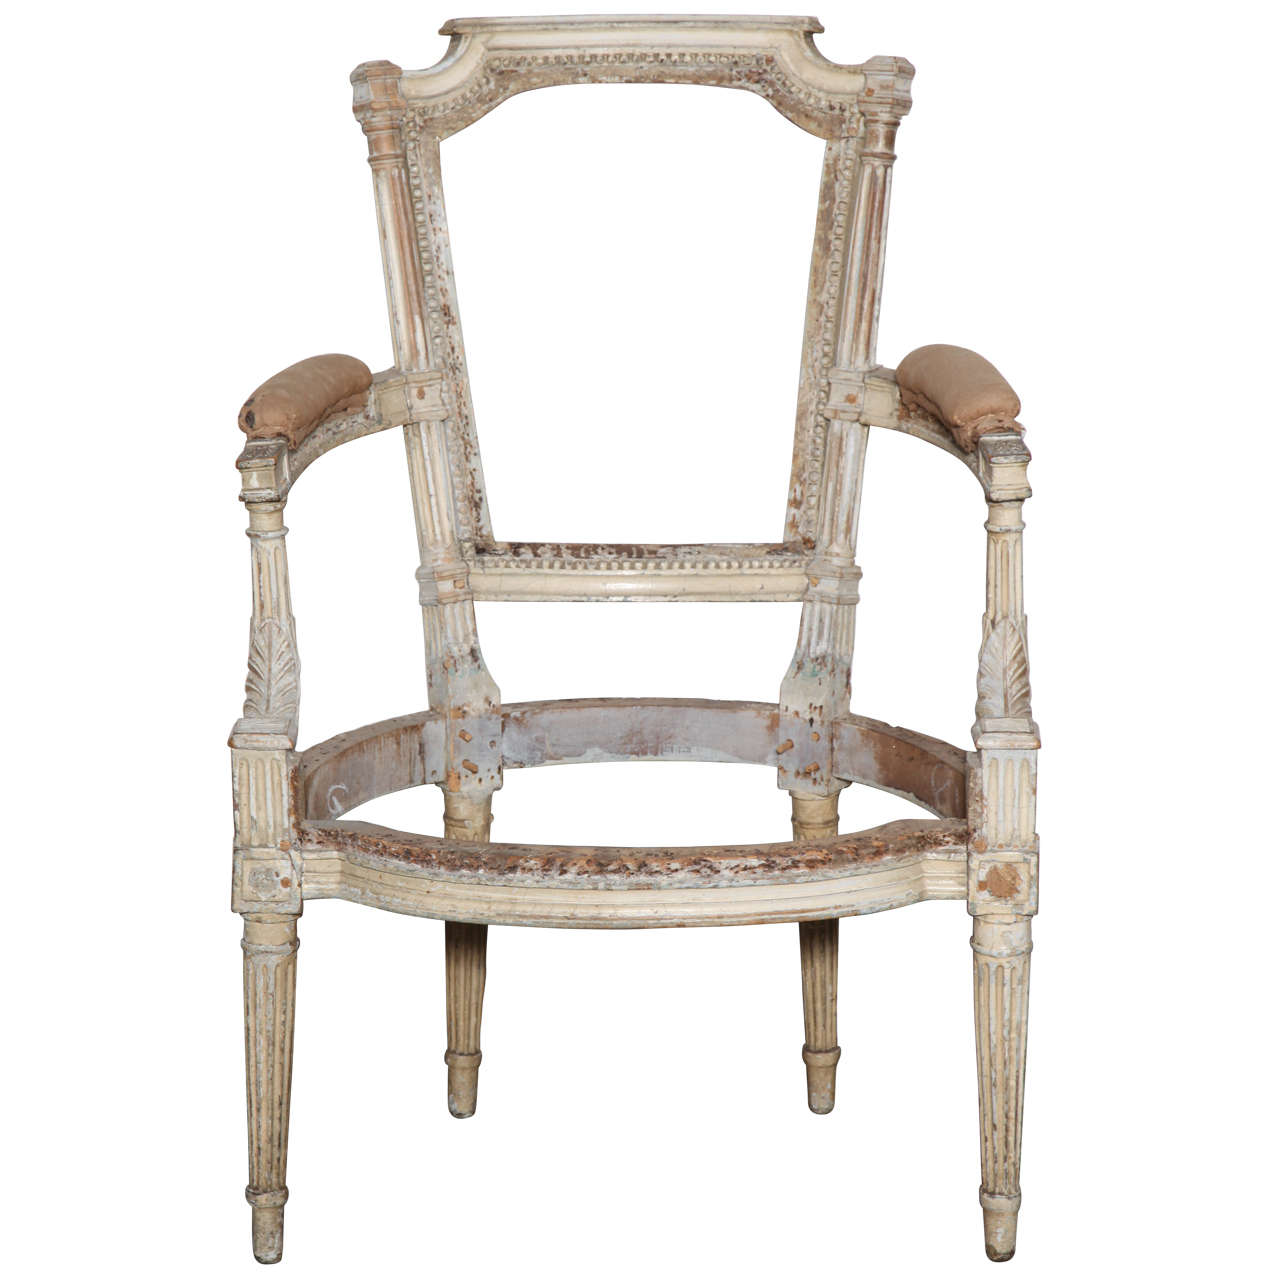 Louis XVI Chair Frame For Sale at 1stdibs